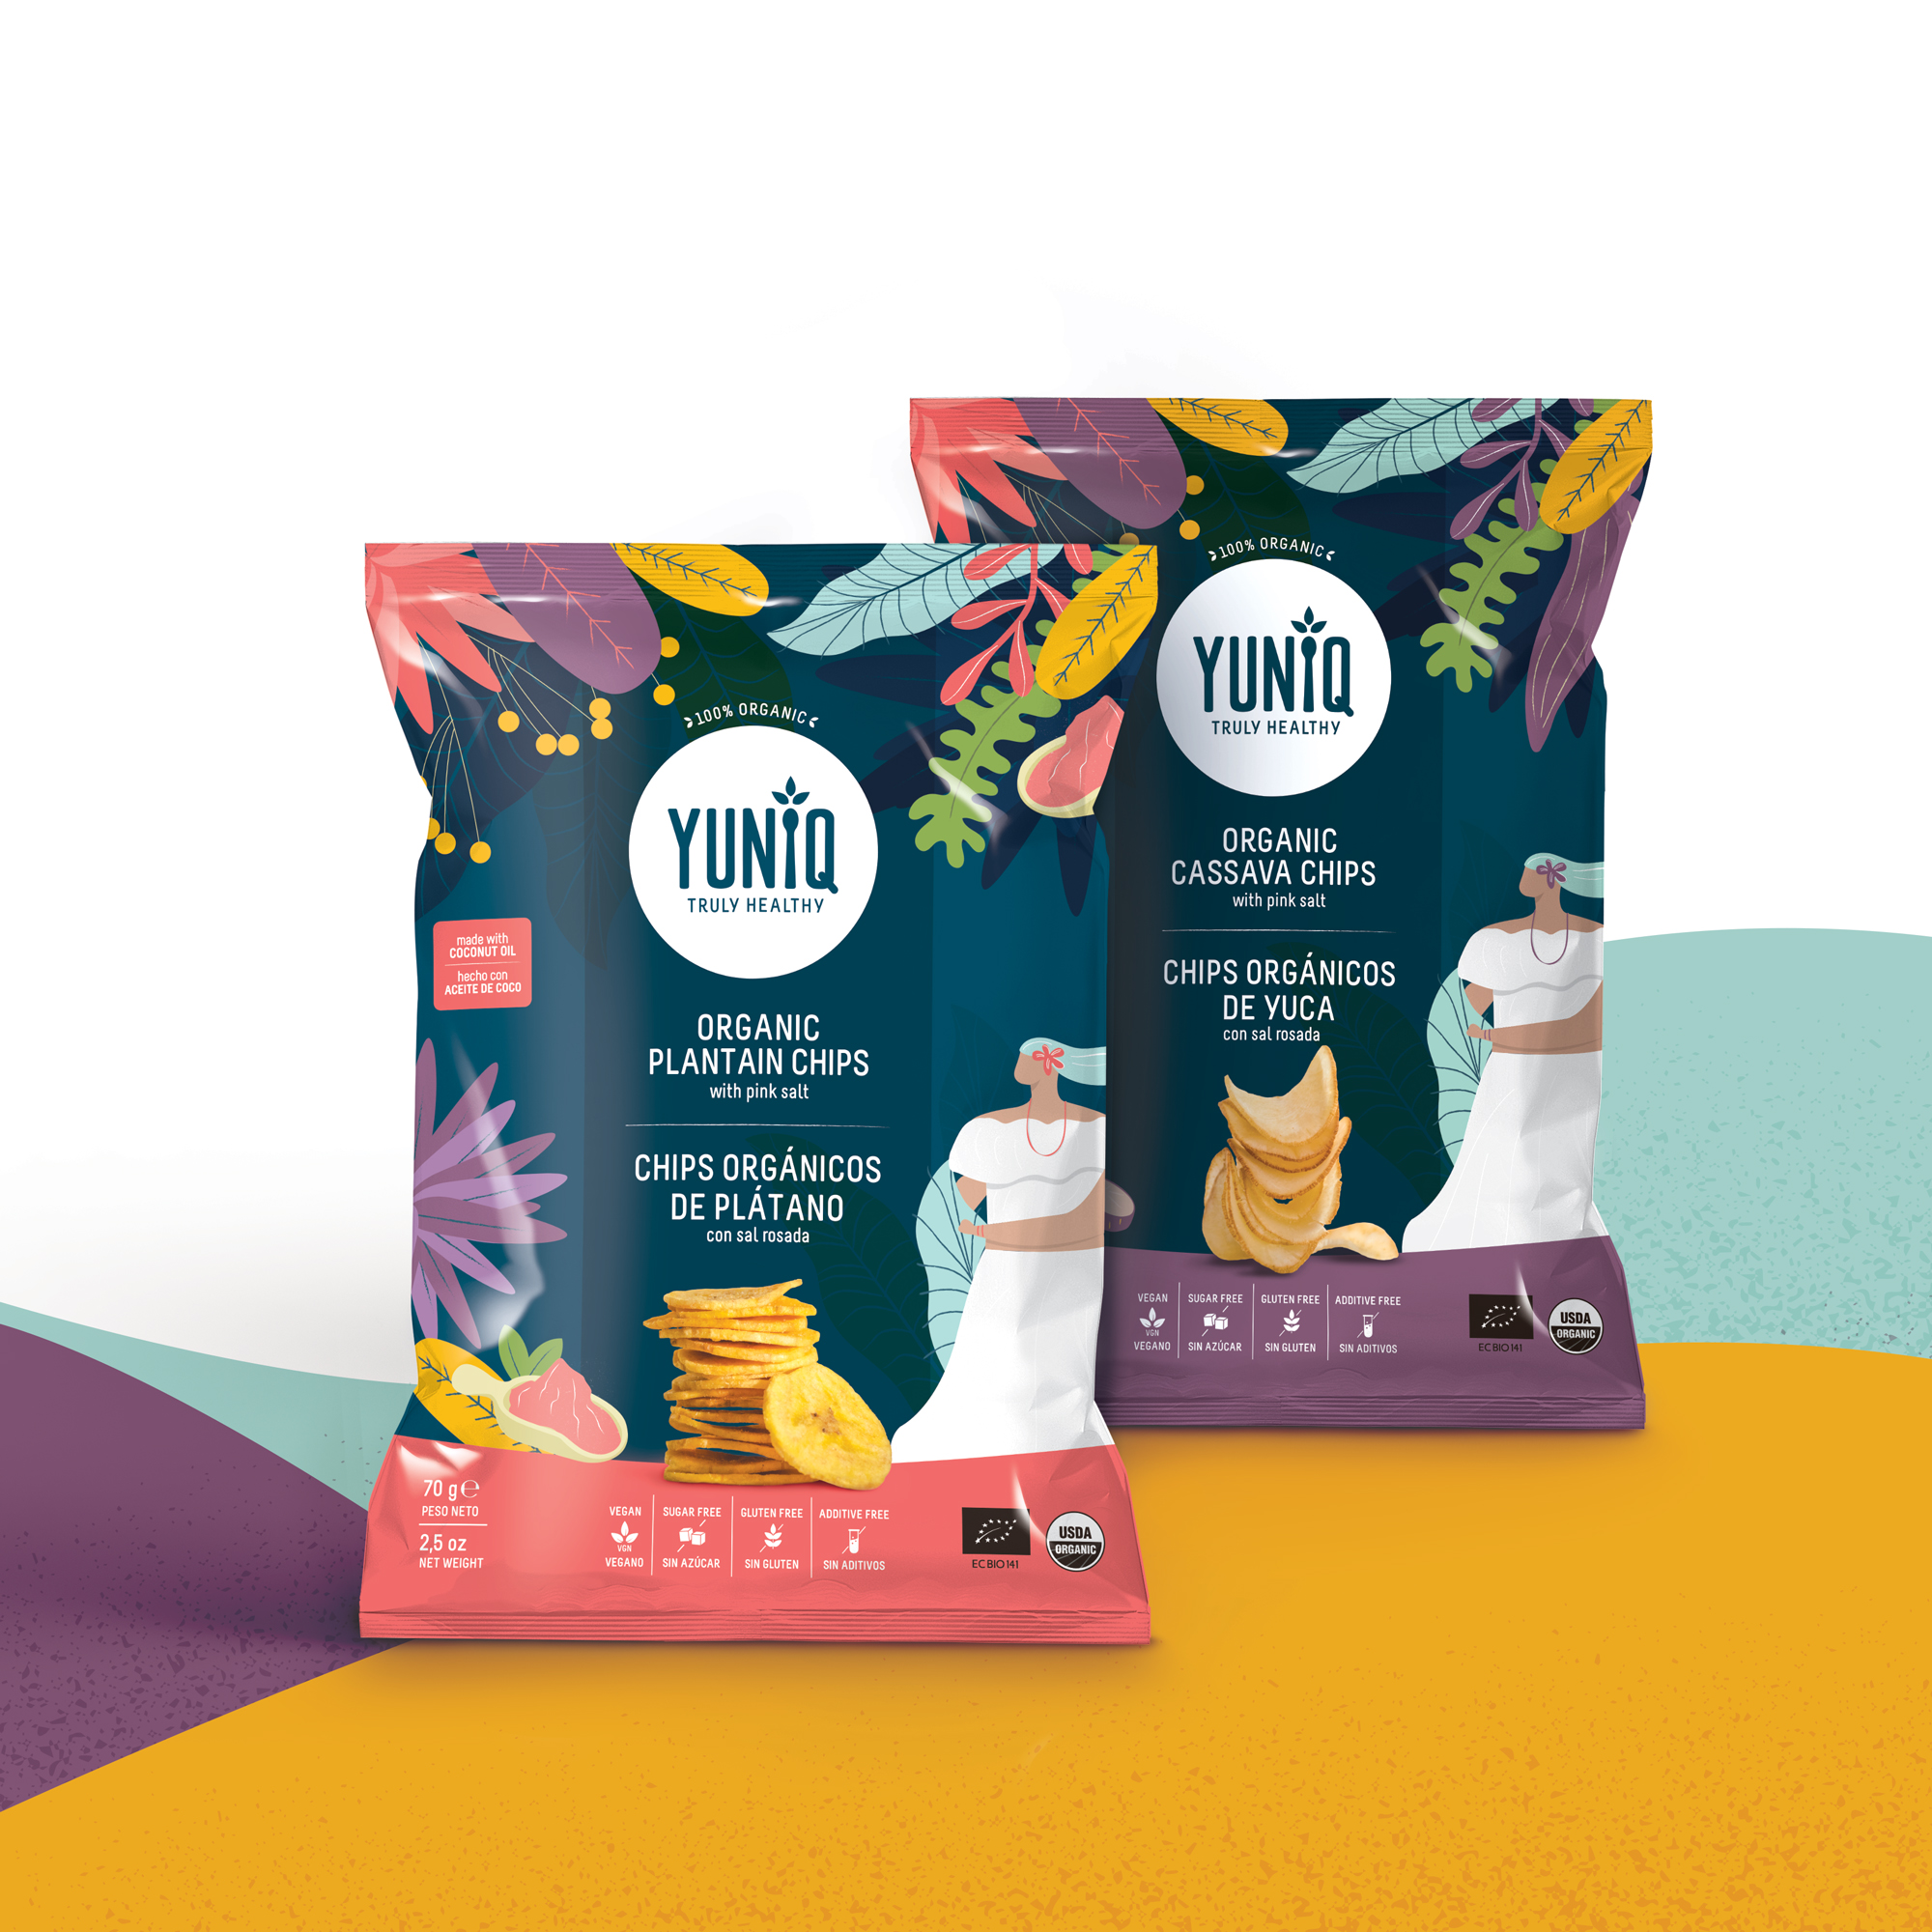 Yuniq rebranding and packaging for organic cassava and plantain chips